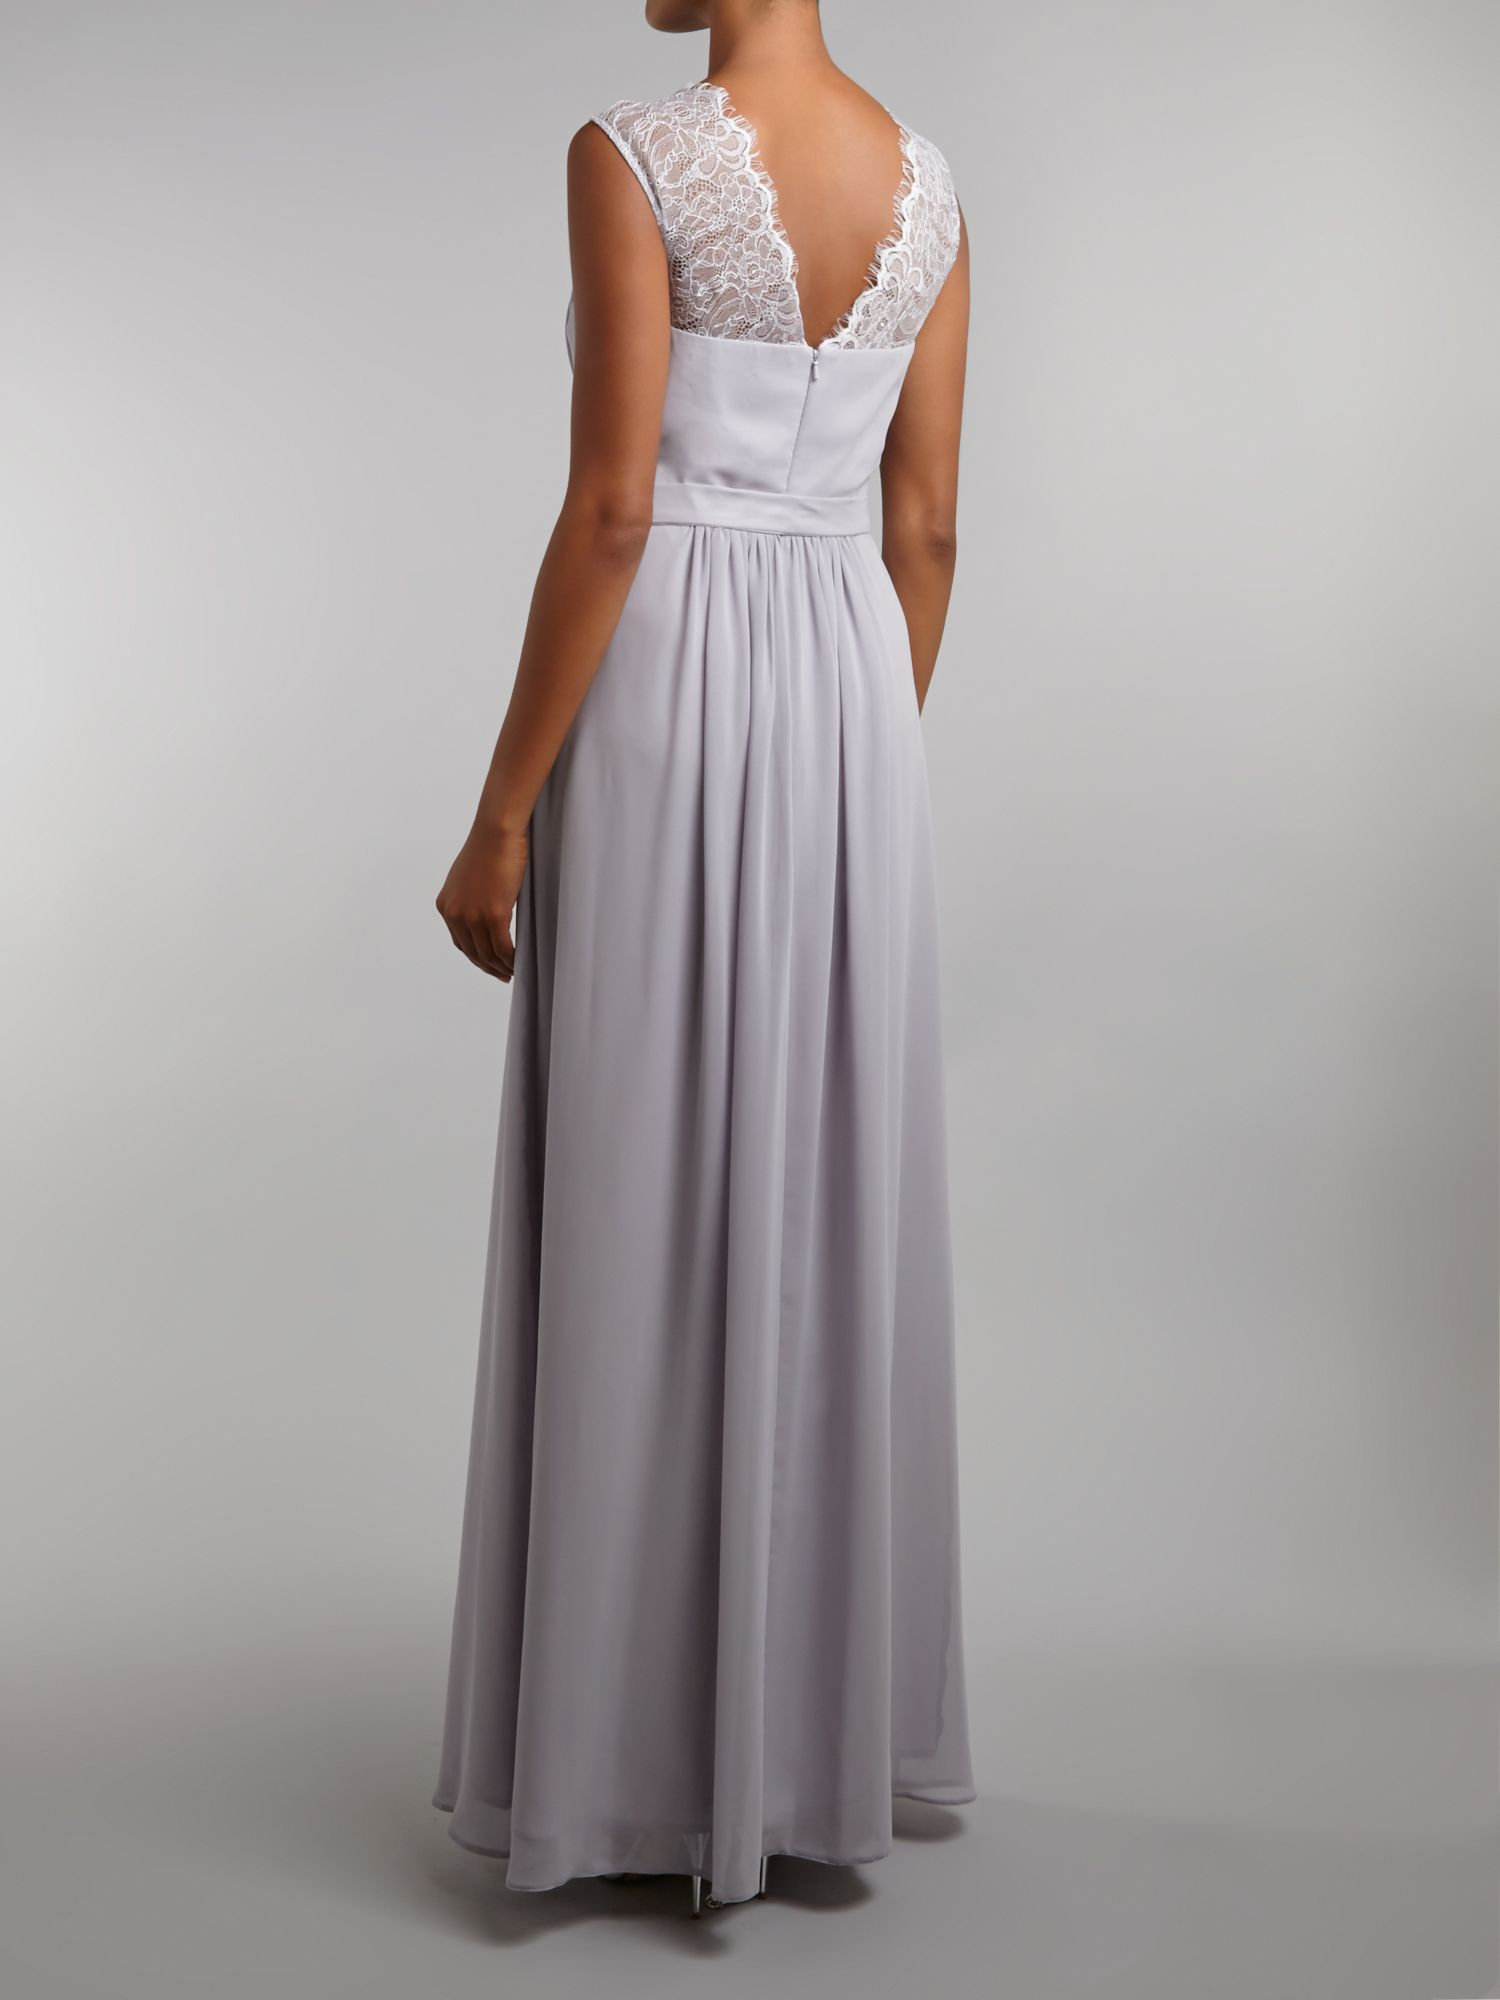 Ariella bridesmaid lace chiffon maxi dress in gray lyst for Lace maxi wedding dress